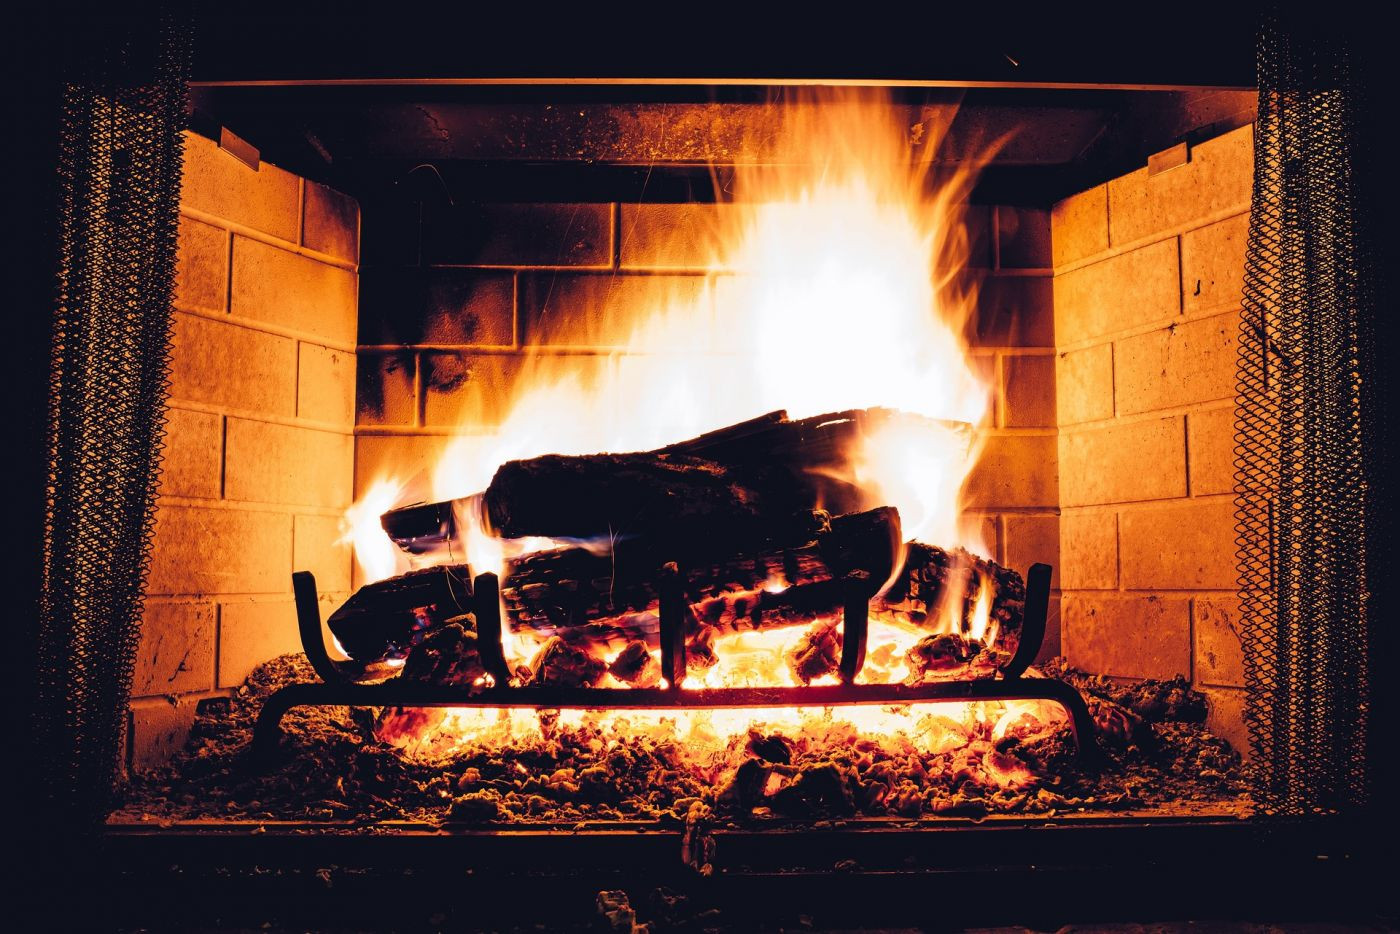 Be Safe: Don't Light a Fire Without Cleaning Your Chimney First